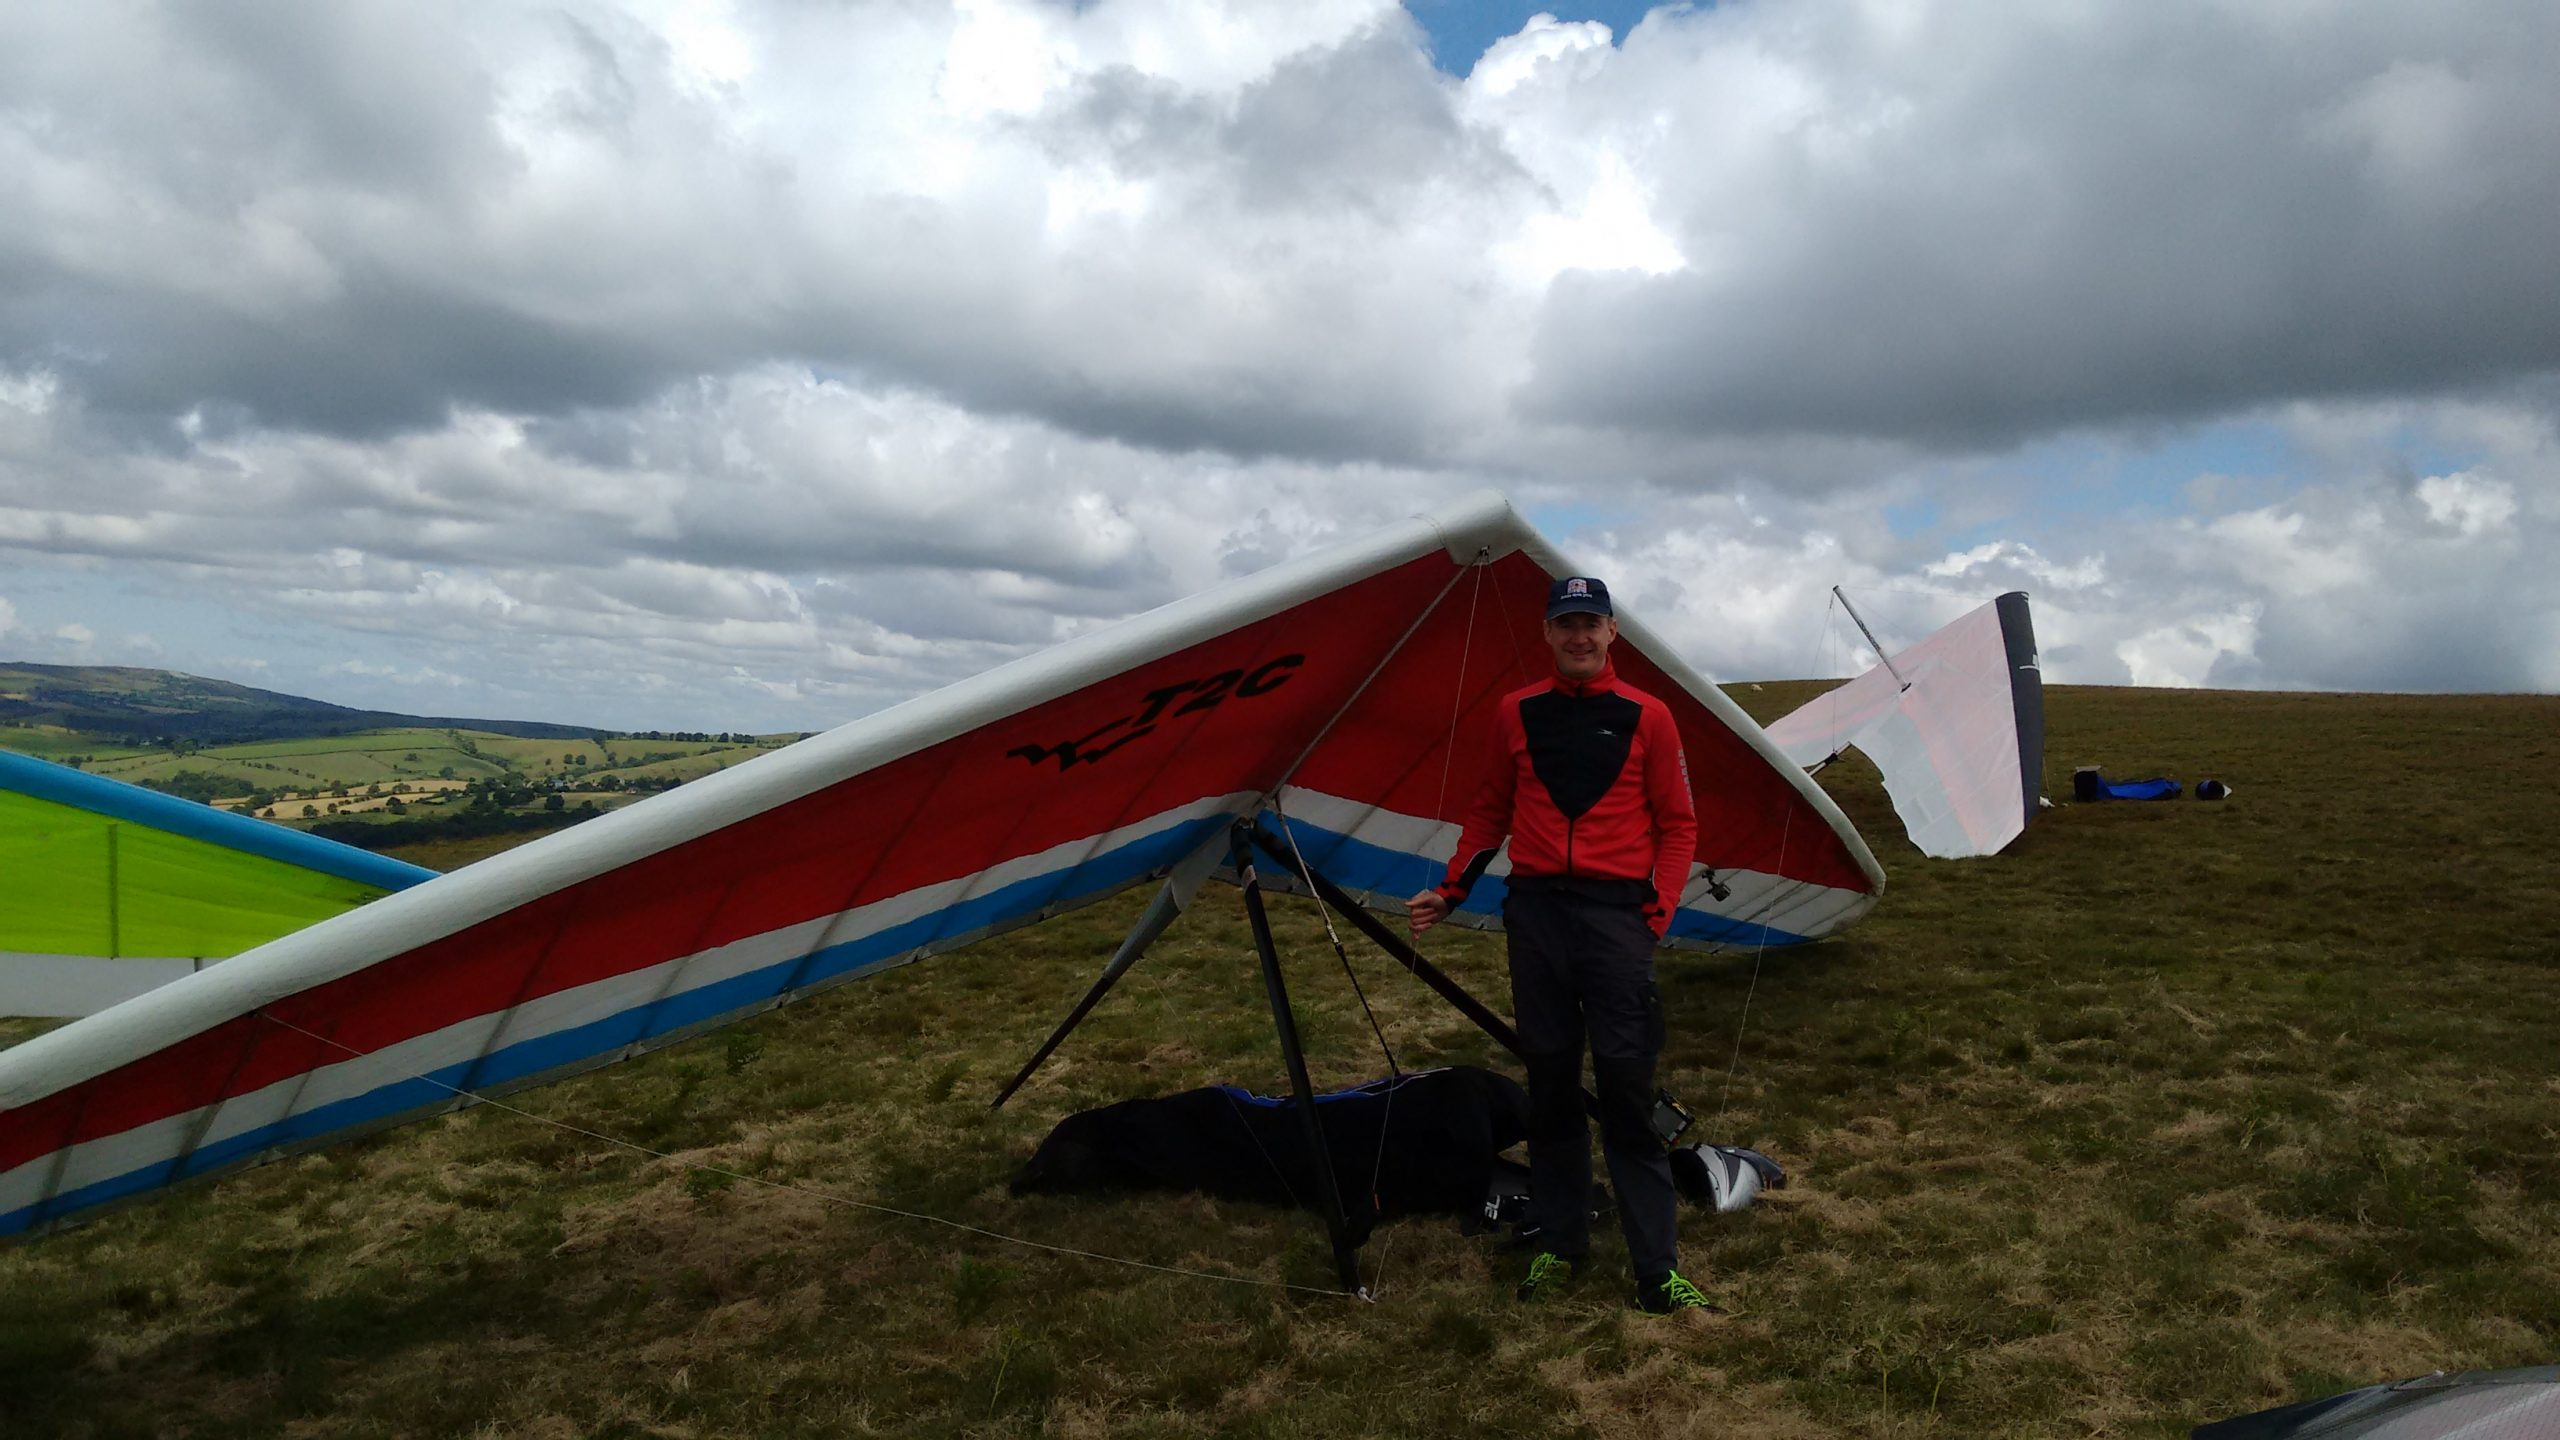 Green dragons hang gliding thermal chasers